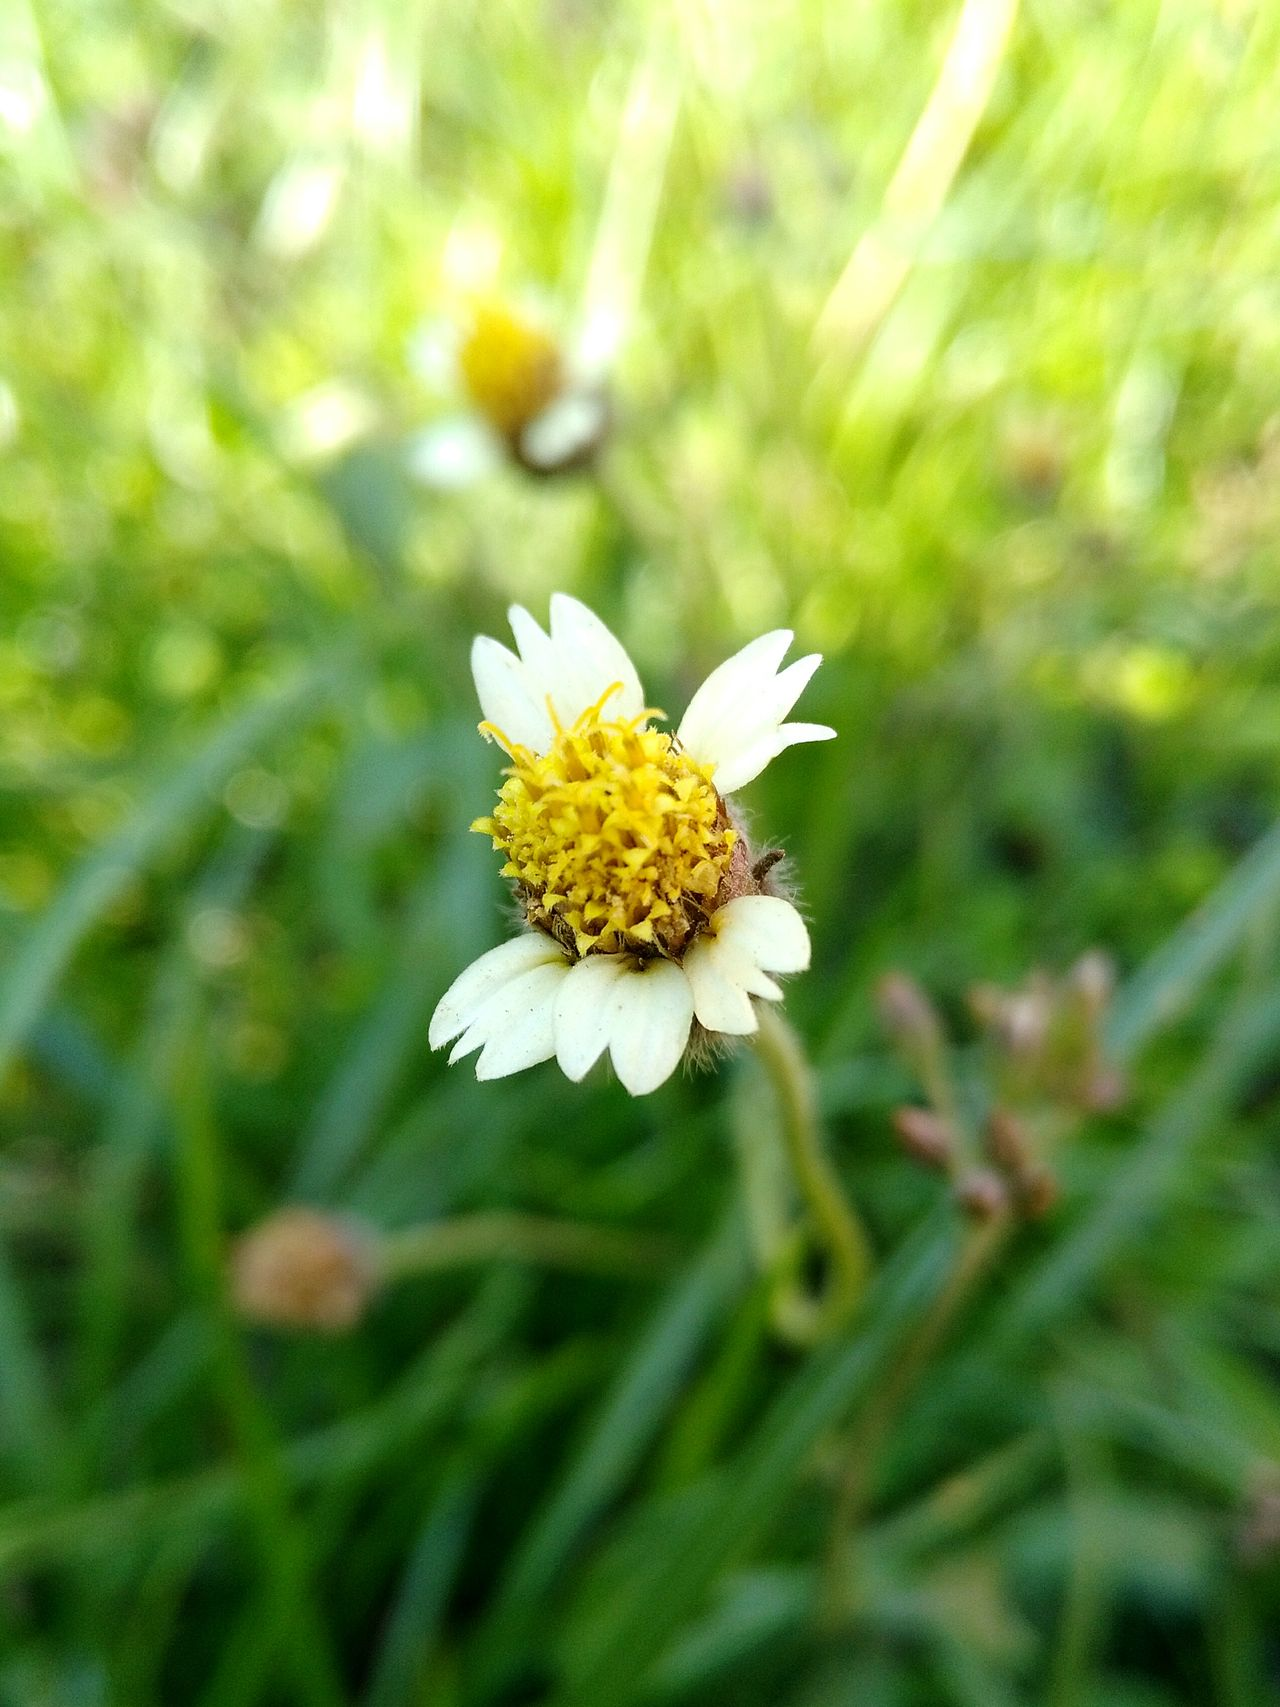 Flower Nature Beauty In Nature Growth Fragility Plant Freshness Close-up Outdoors No People Flower Head Day Grass Green Color Nature